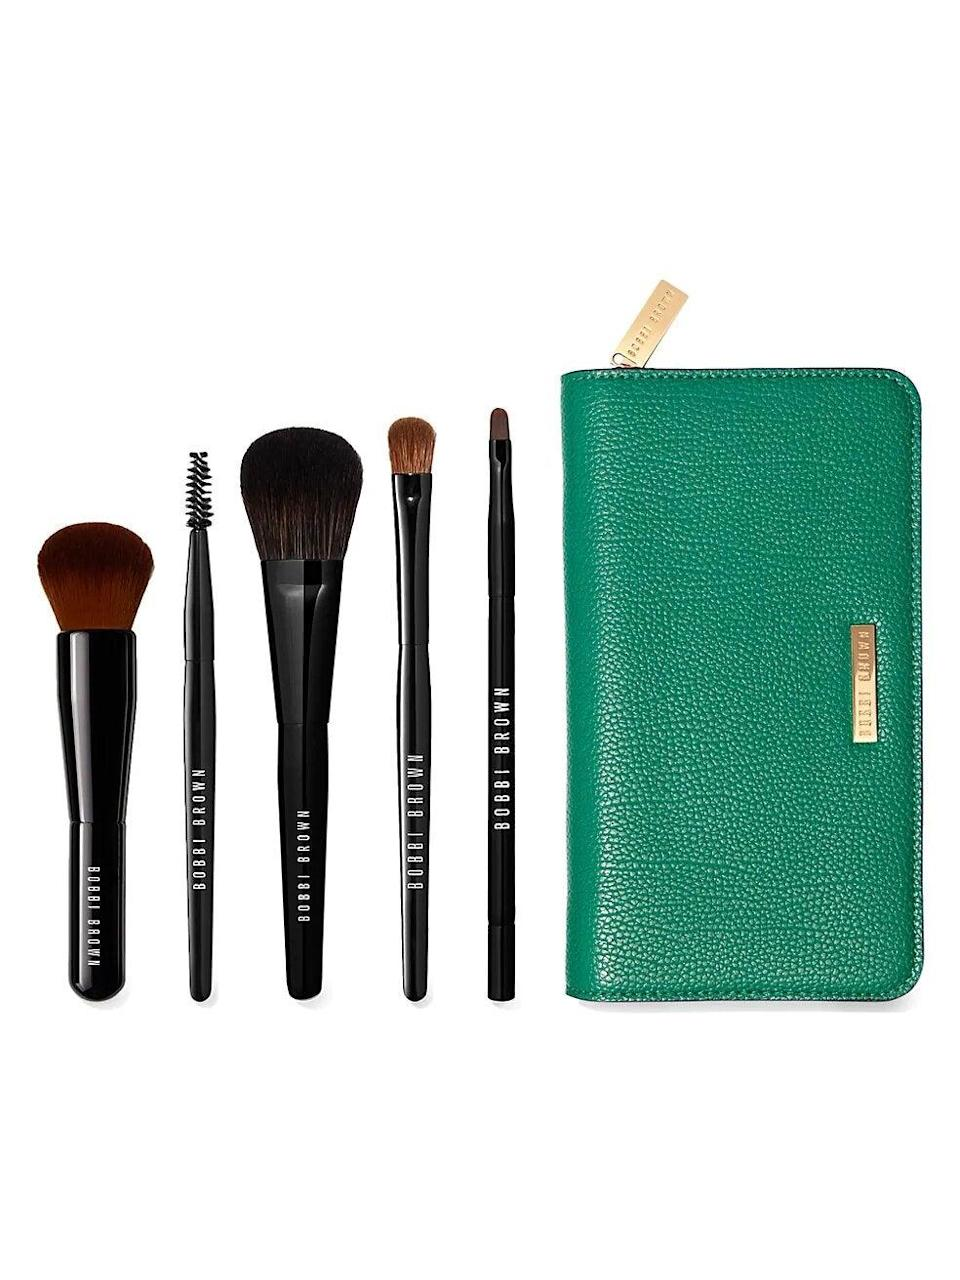 "<br><br><strong>Bobbi Brown</strong> The Essential Brush Kit, $, available at <a href=""https://go.skimresources.com/?id=30283X879131&url=https%3A%2F%2Fwww.saksfifthavenue.com%2Fproduct%2Fbobbi-brown-the-essential-brush-kit----231-value-0400013157175.html"" rel=""nofollow noopener"" target=""_blank"" data-ylk=""slk:Saks Fifth Avenue"" class=""link rapid-noclick-resp"">Saks Fifth Avenue</a>"